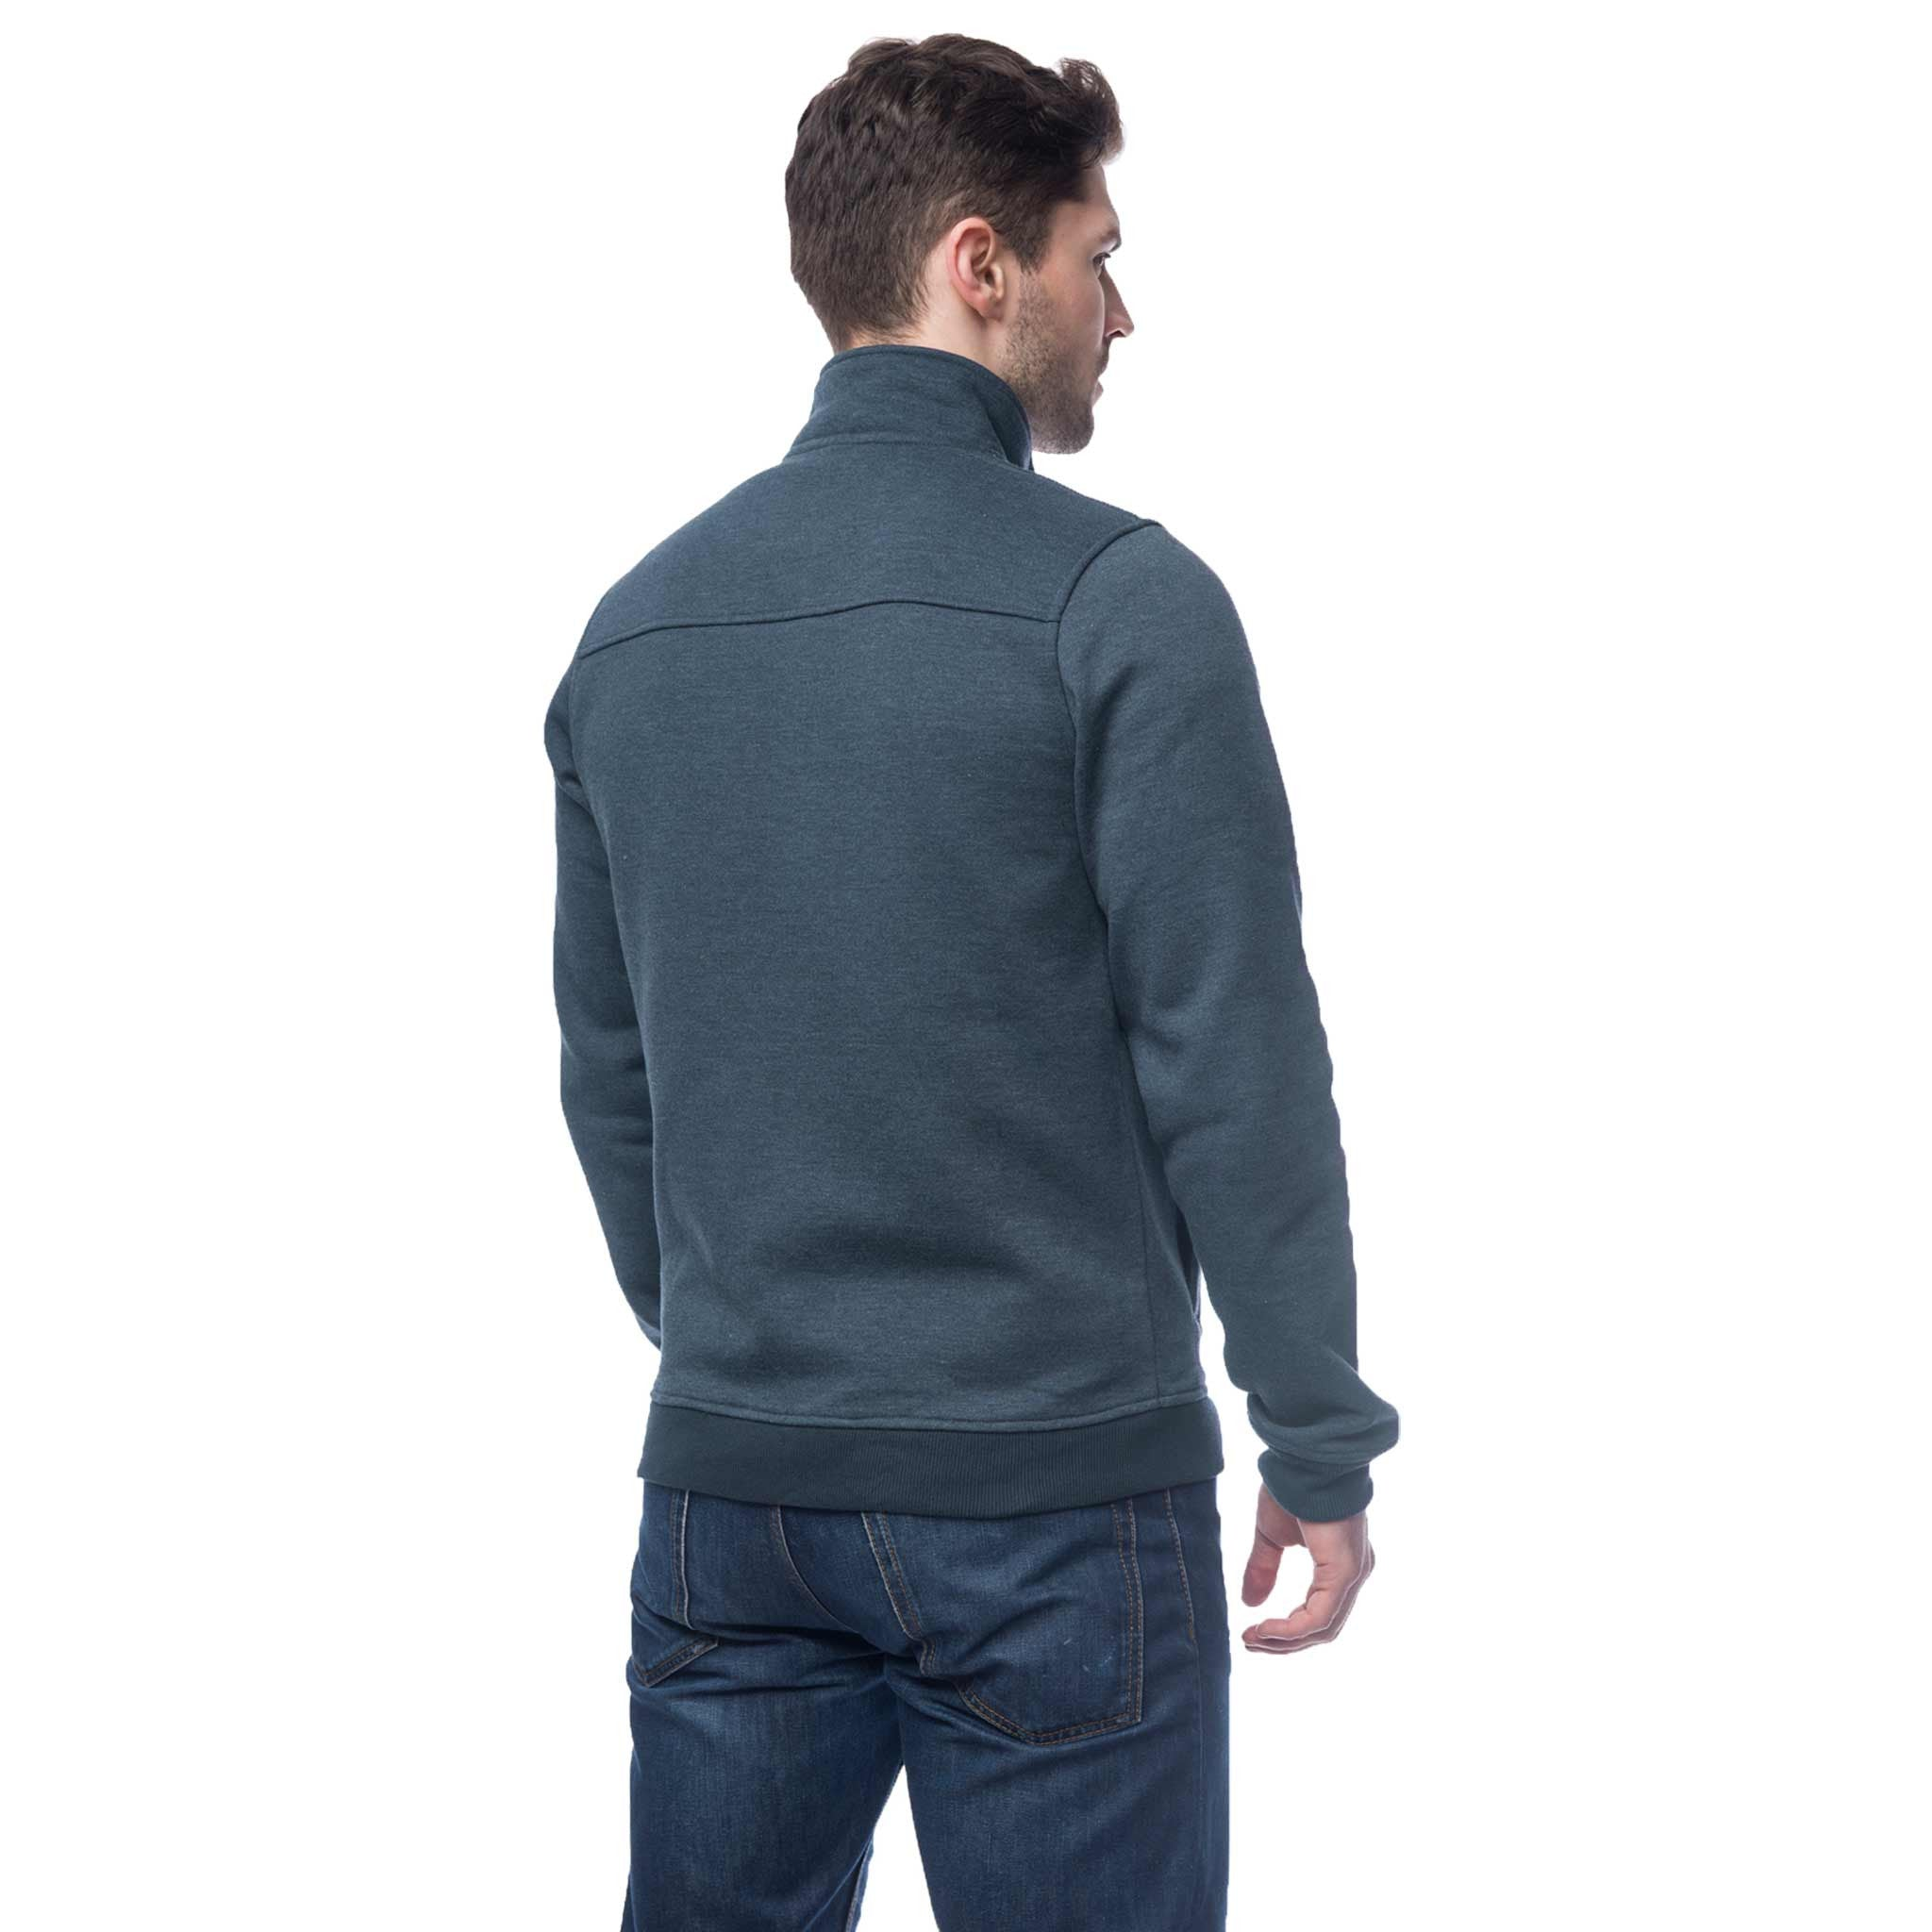 Lighthouse Coast Mens Full Zip Sweater in Navy